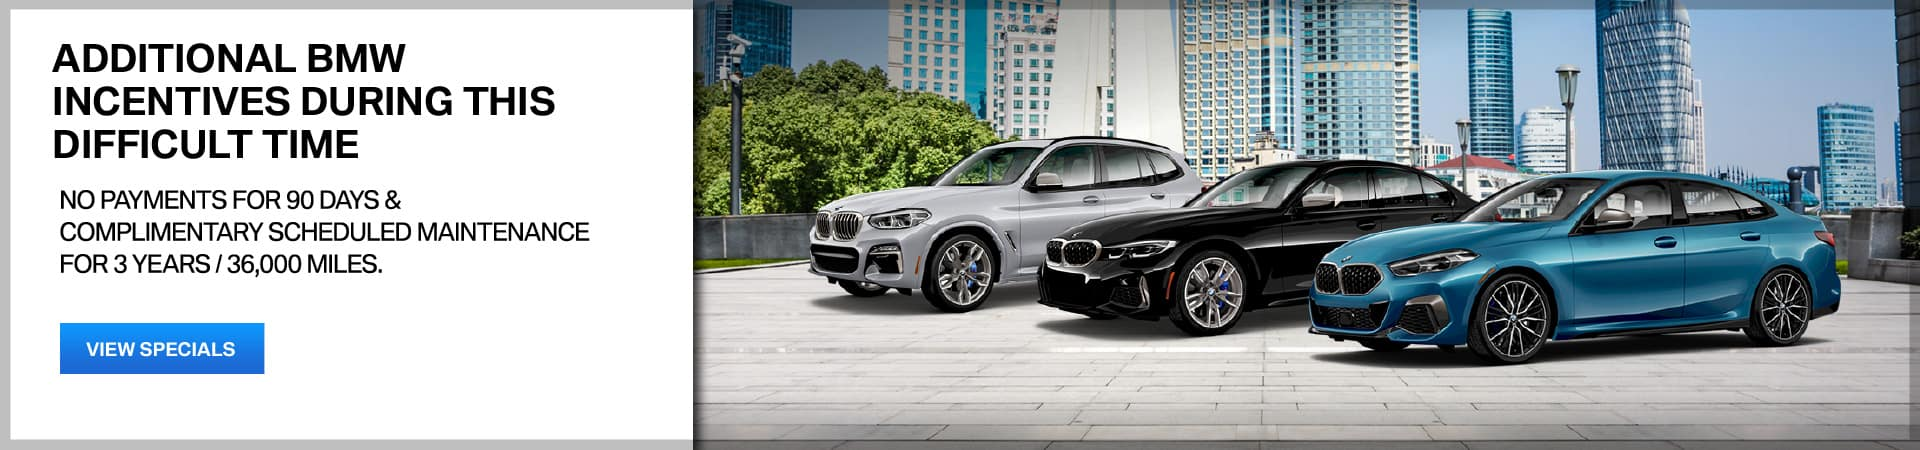 Autobahn BMW Fort Worth   New Additional Incentives from BMW